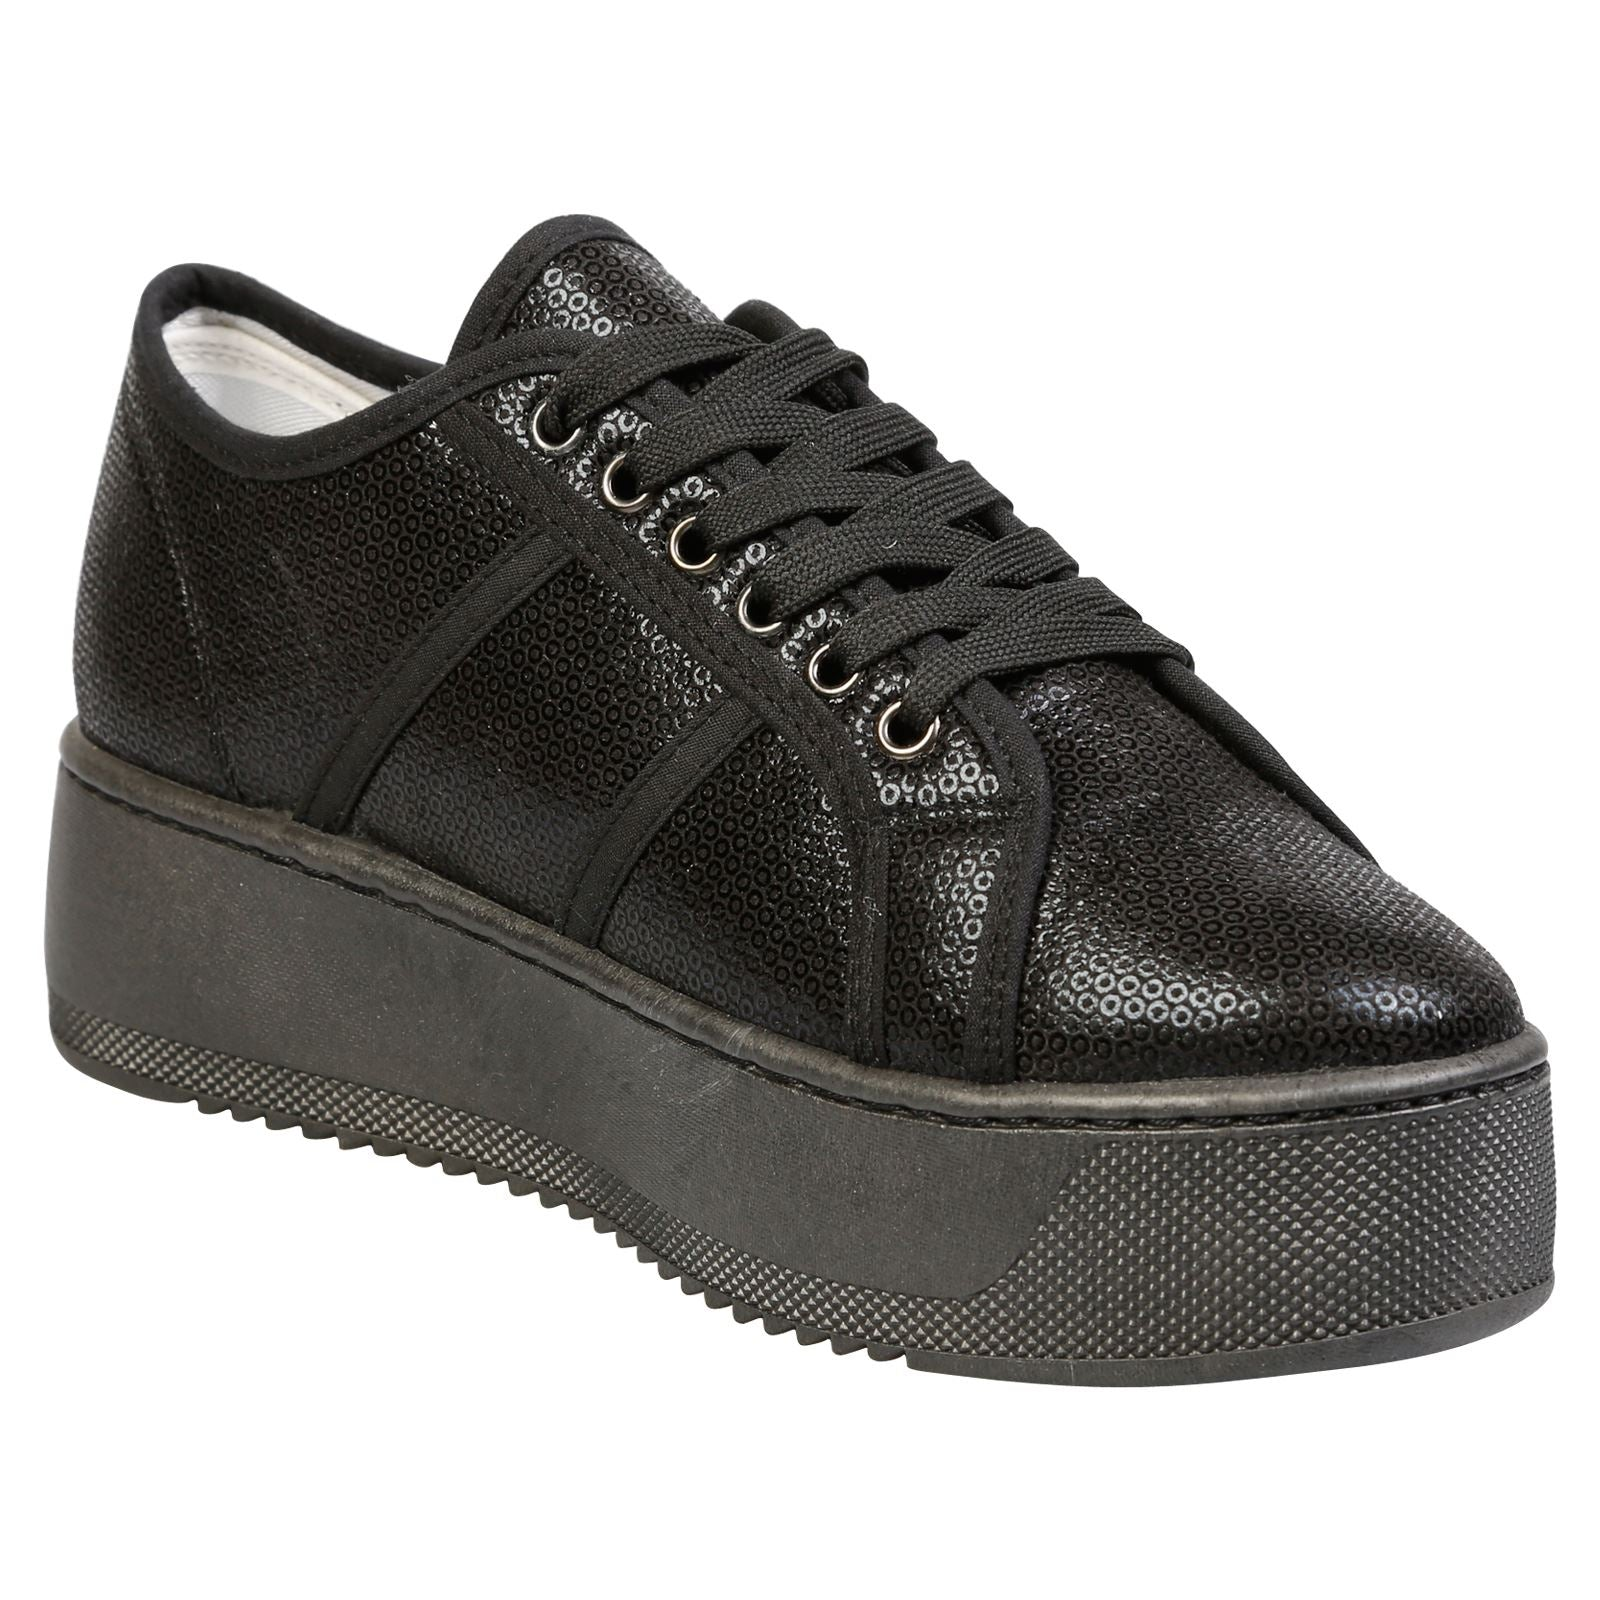 Brylee Chunky Flatform Trainers in Black